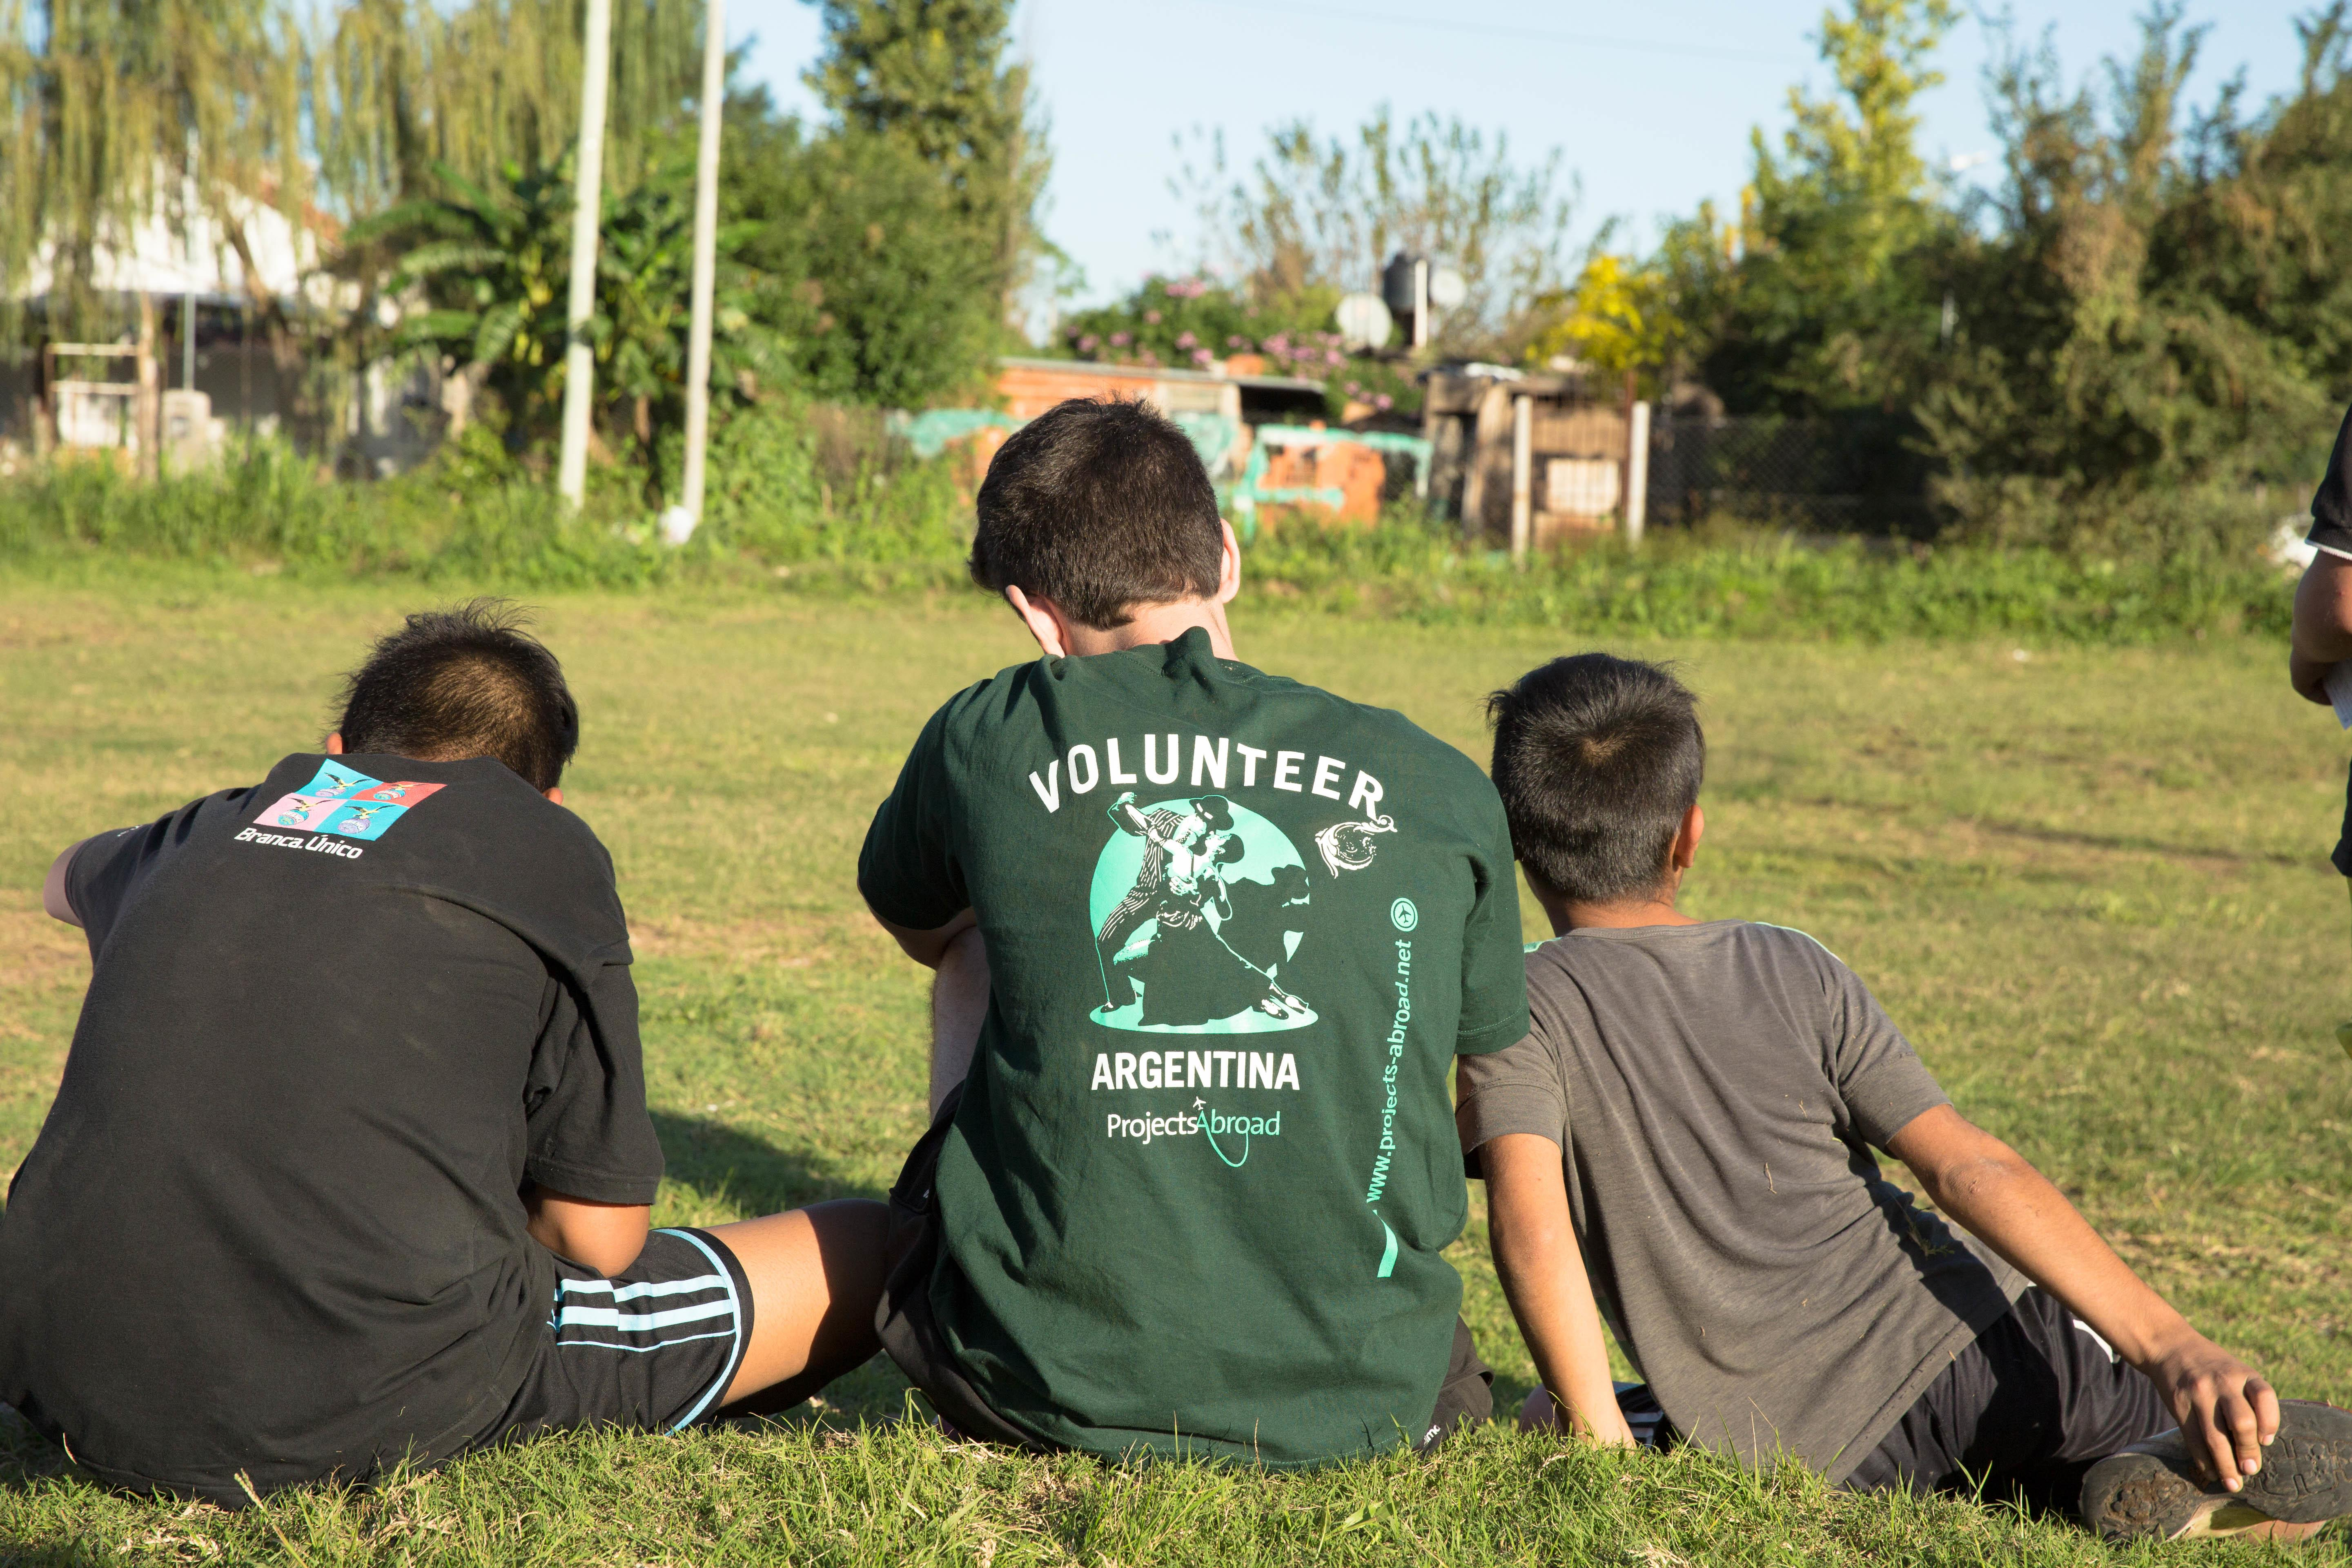 While learning Spanish in Argentina, a student decides to volunteer at a local school and leads an activity outside on the field.